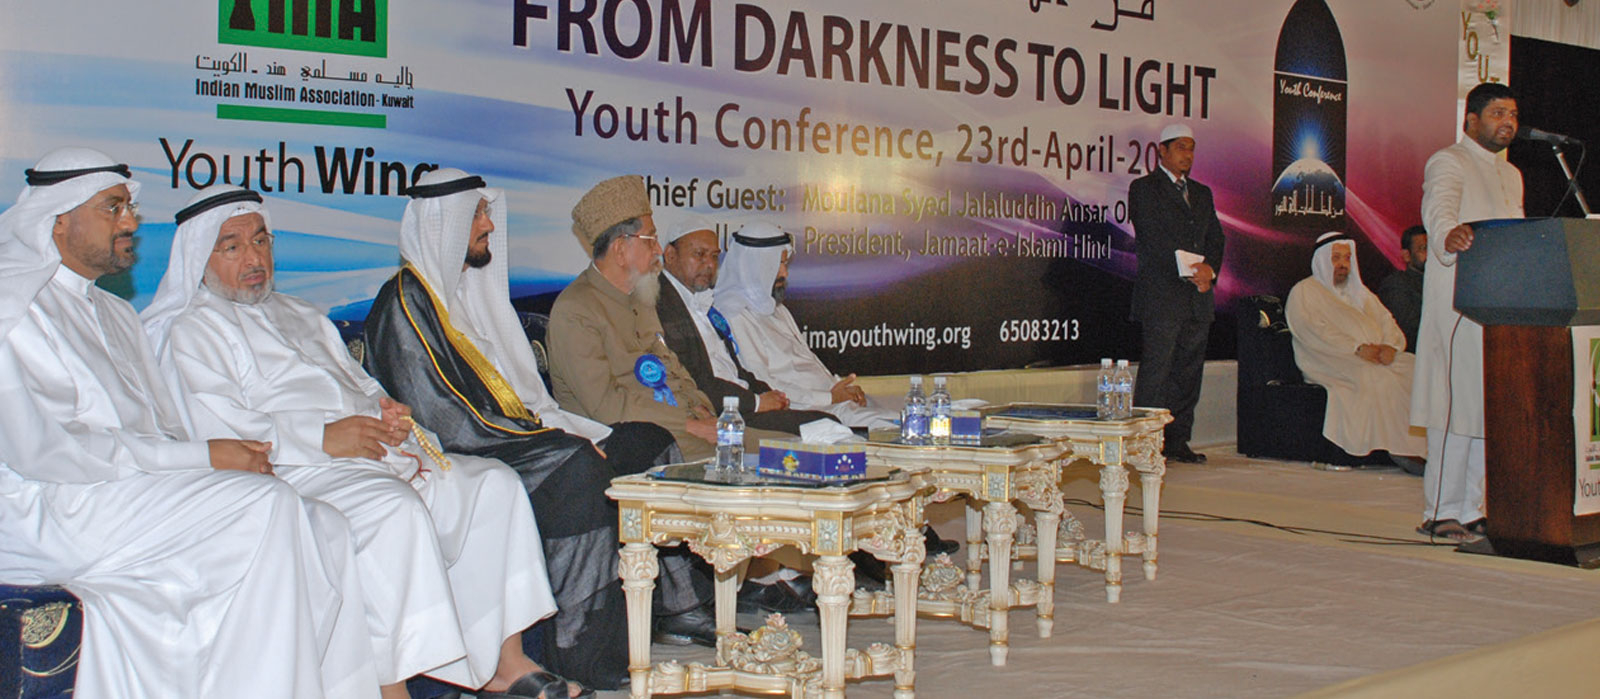 From Darkness to Light- An historic conference